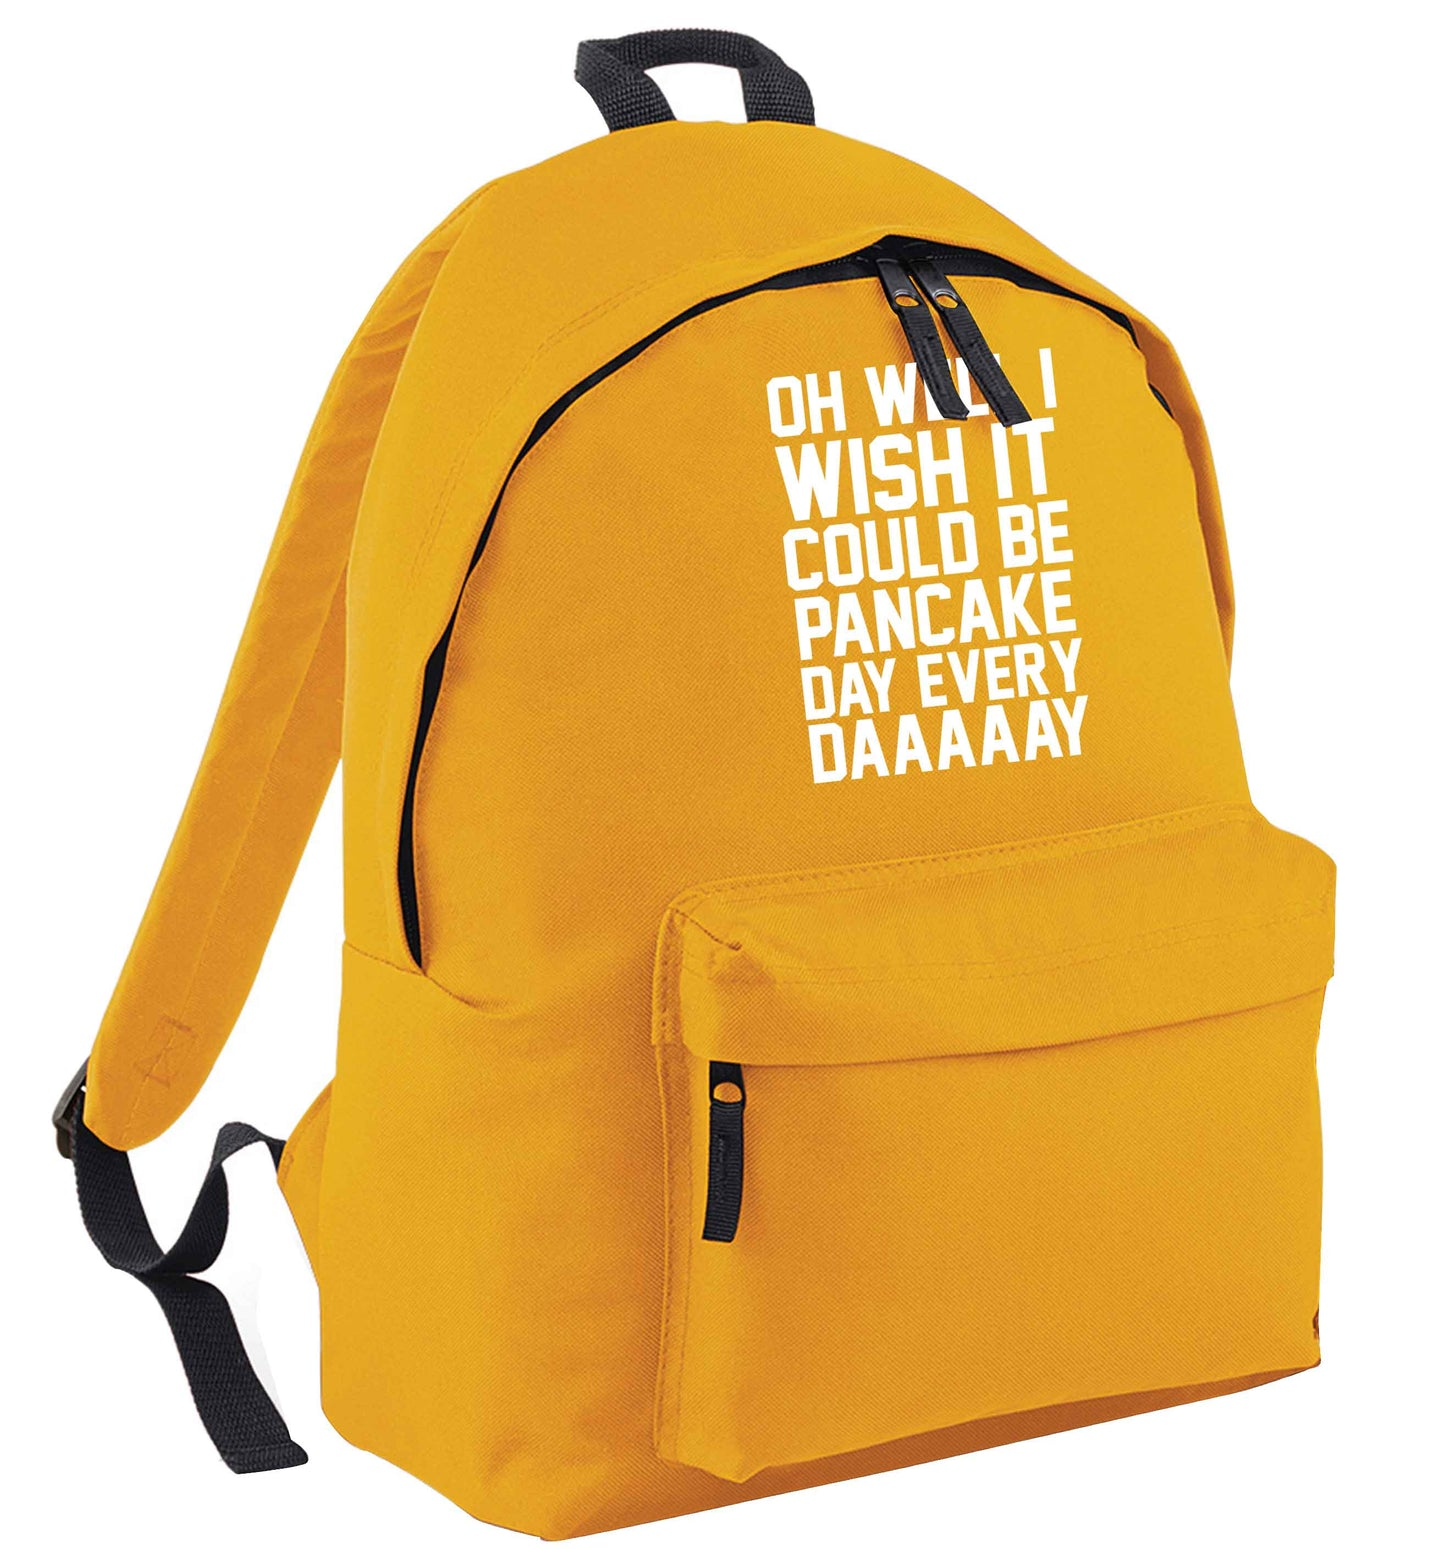 Oh well I wish it could be pancake day every day mustard adults backpack